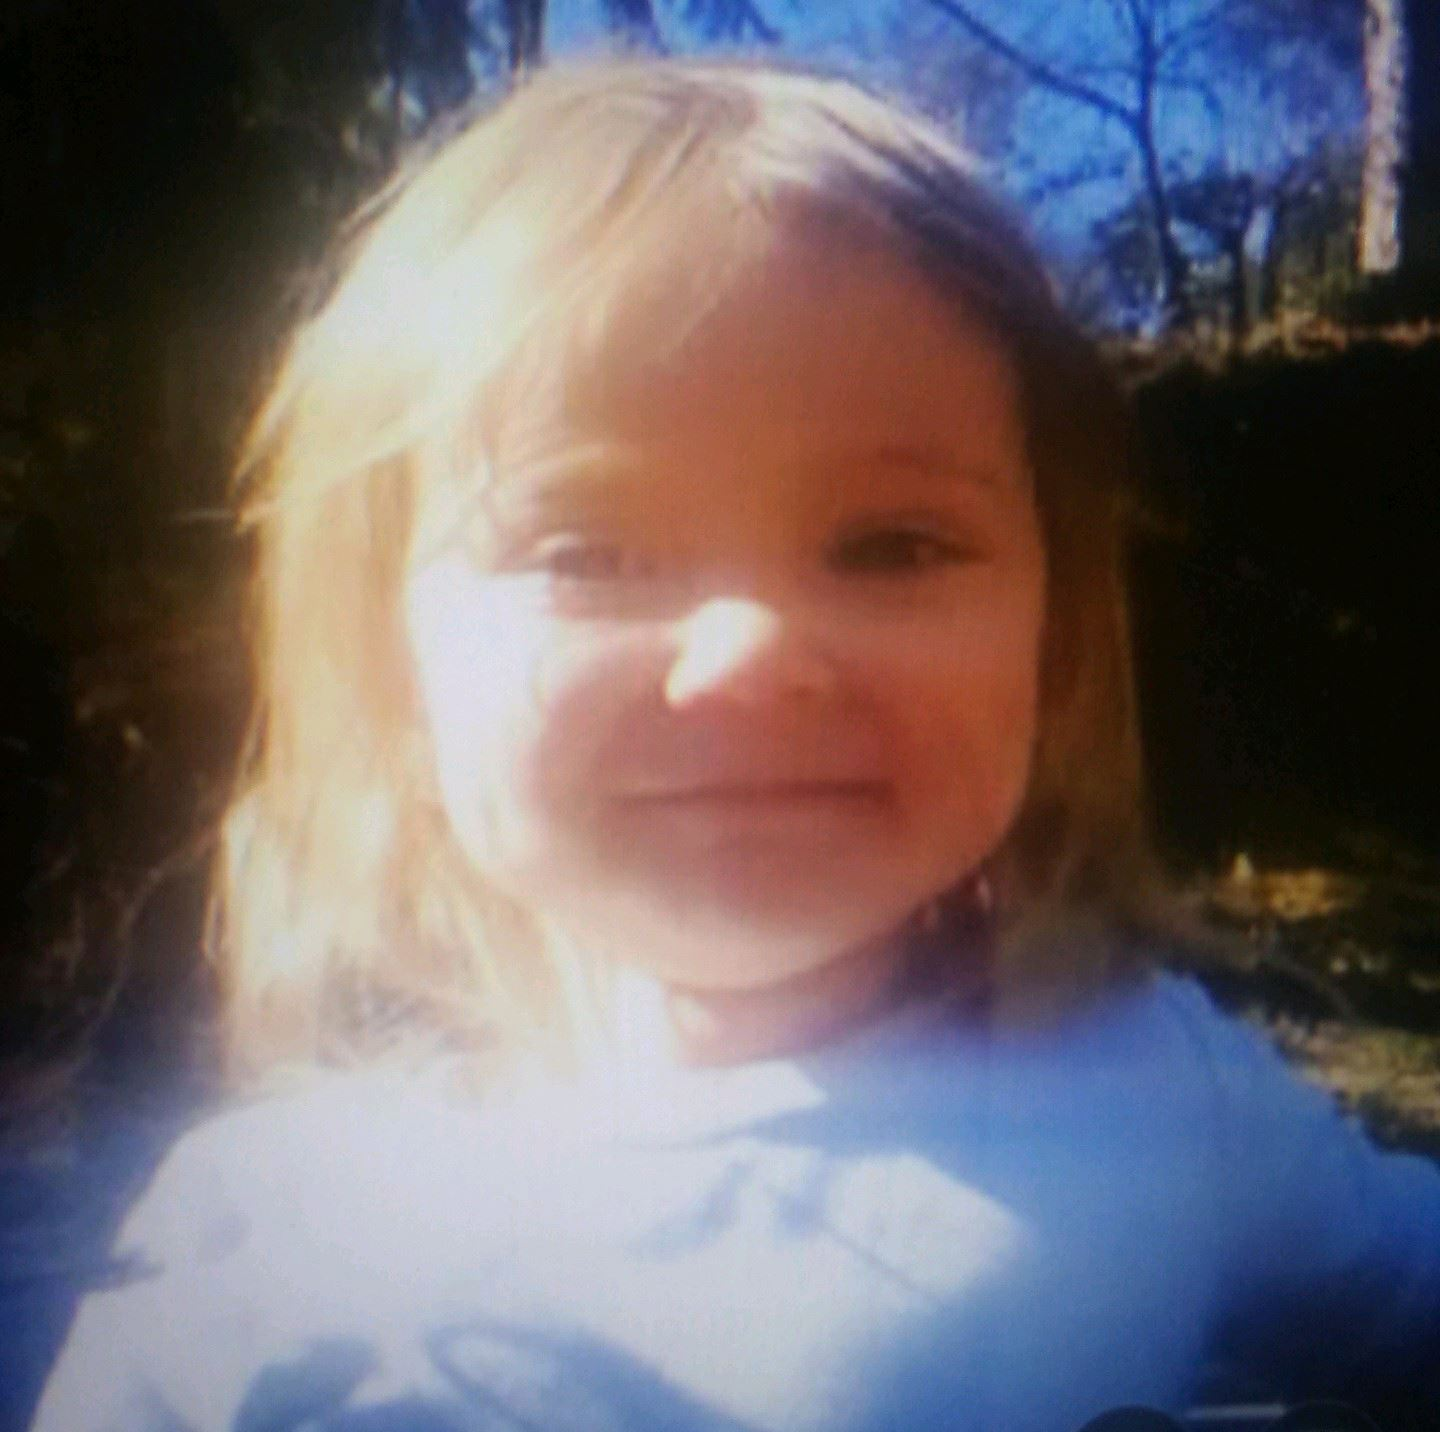 Mira Carter is described as a Caucasian female toddler, with blonde hair and blue eyes. She is 2 fee